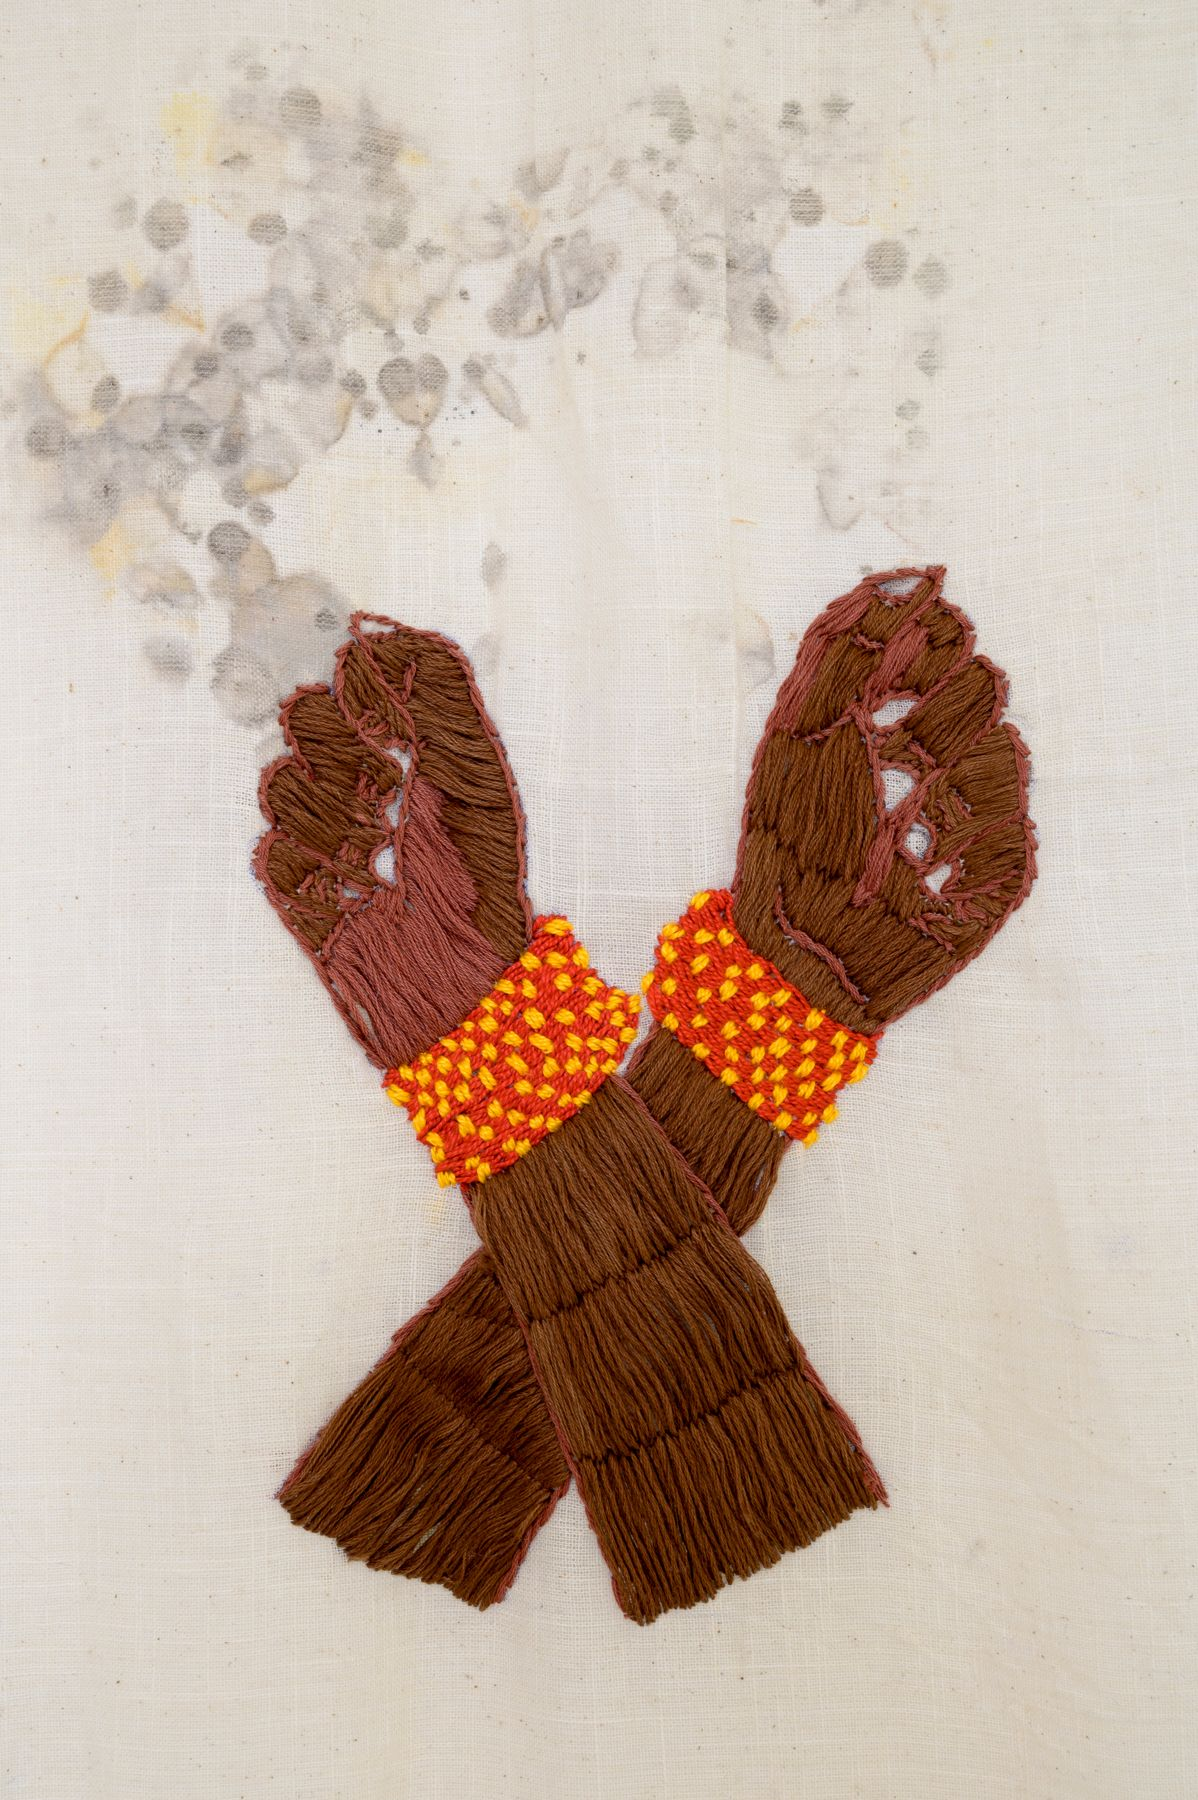 Quishile Charan, Oral History: Glass Bangles Broken in Protest at Police Barrier, Nausori 1920. 2019. Close up details of embroidered hands.